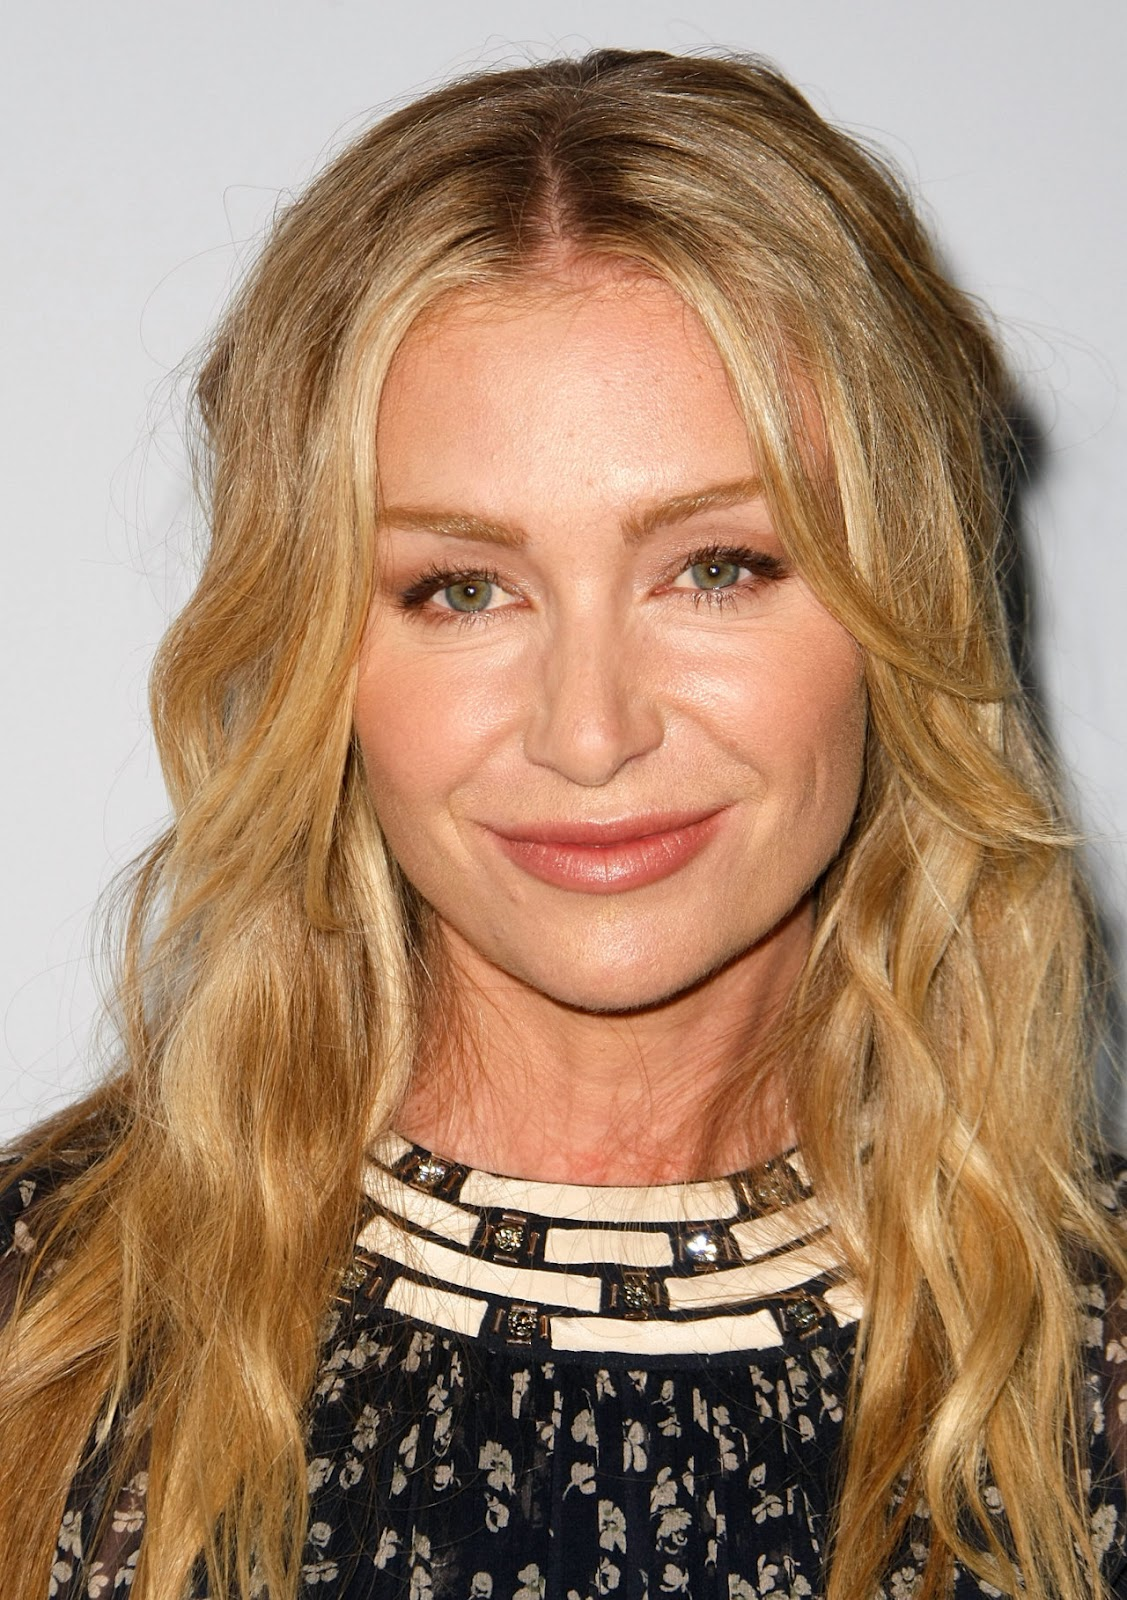 Portia De Rossi Hairstyle Pictures Fashionista Trends